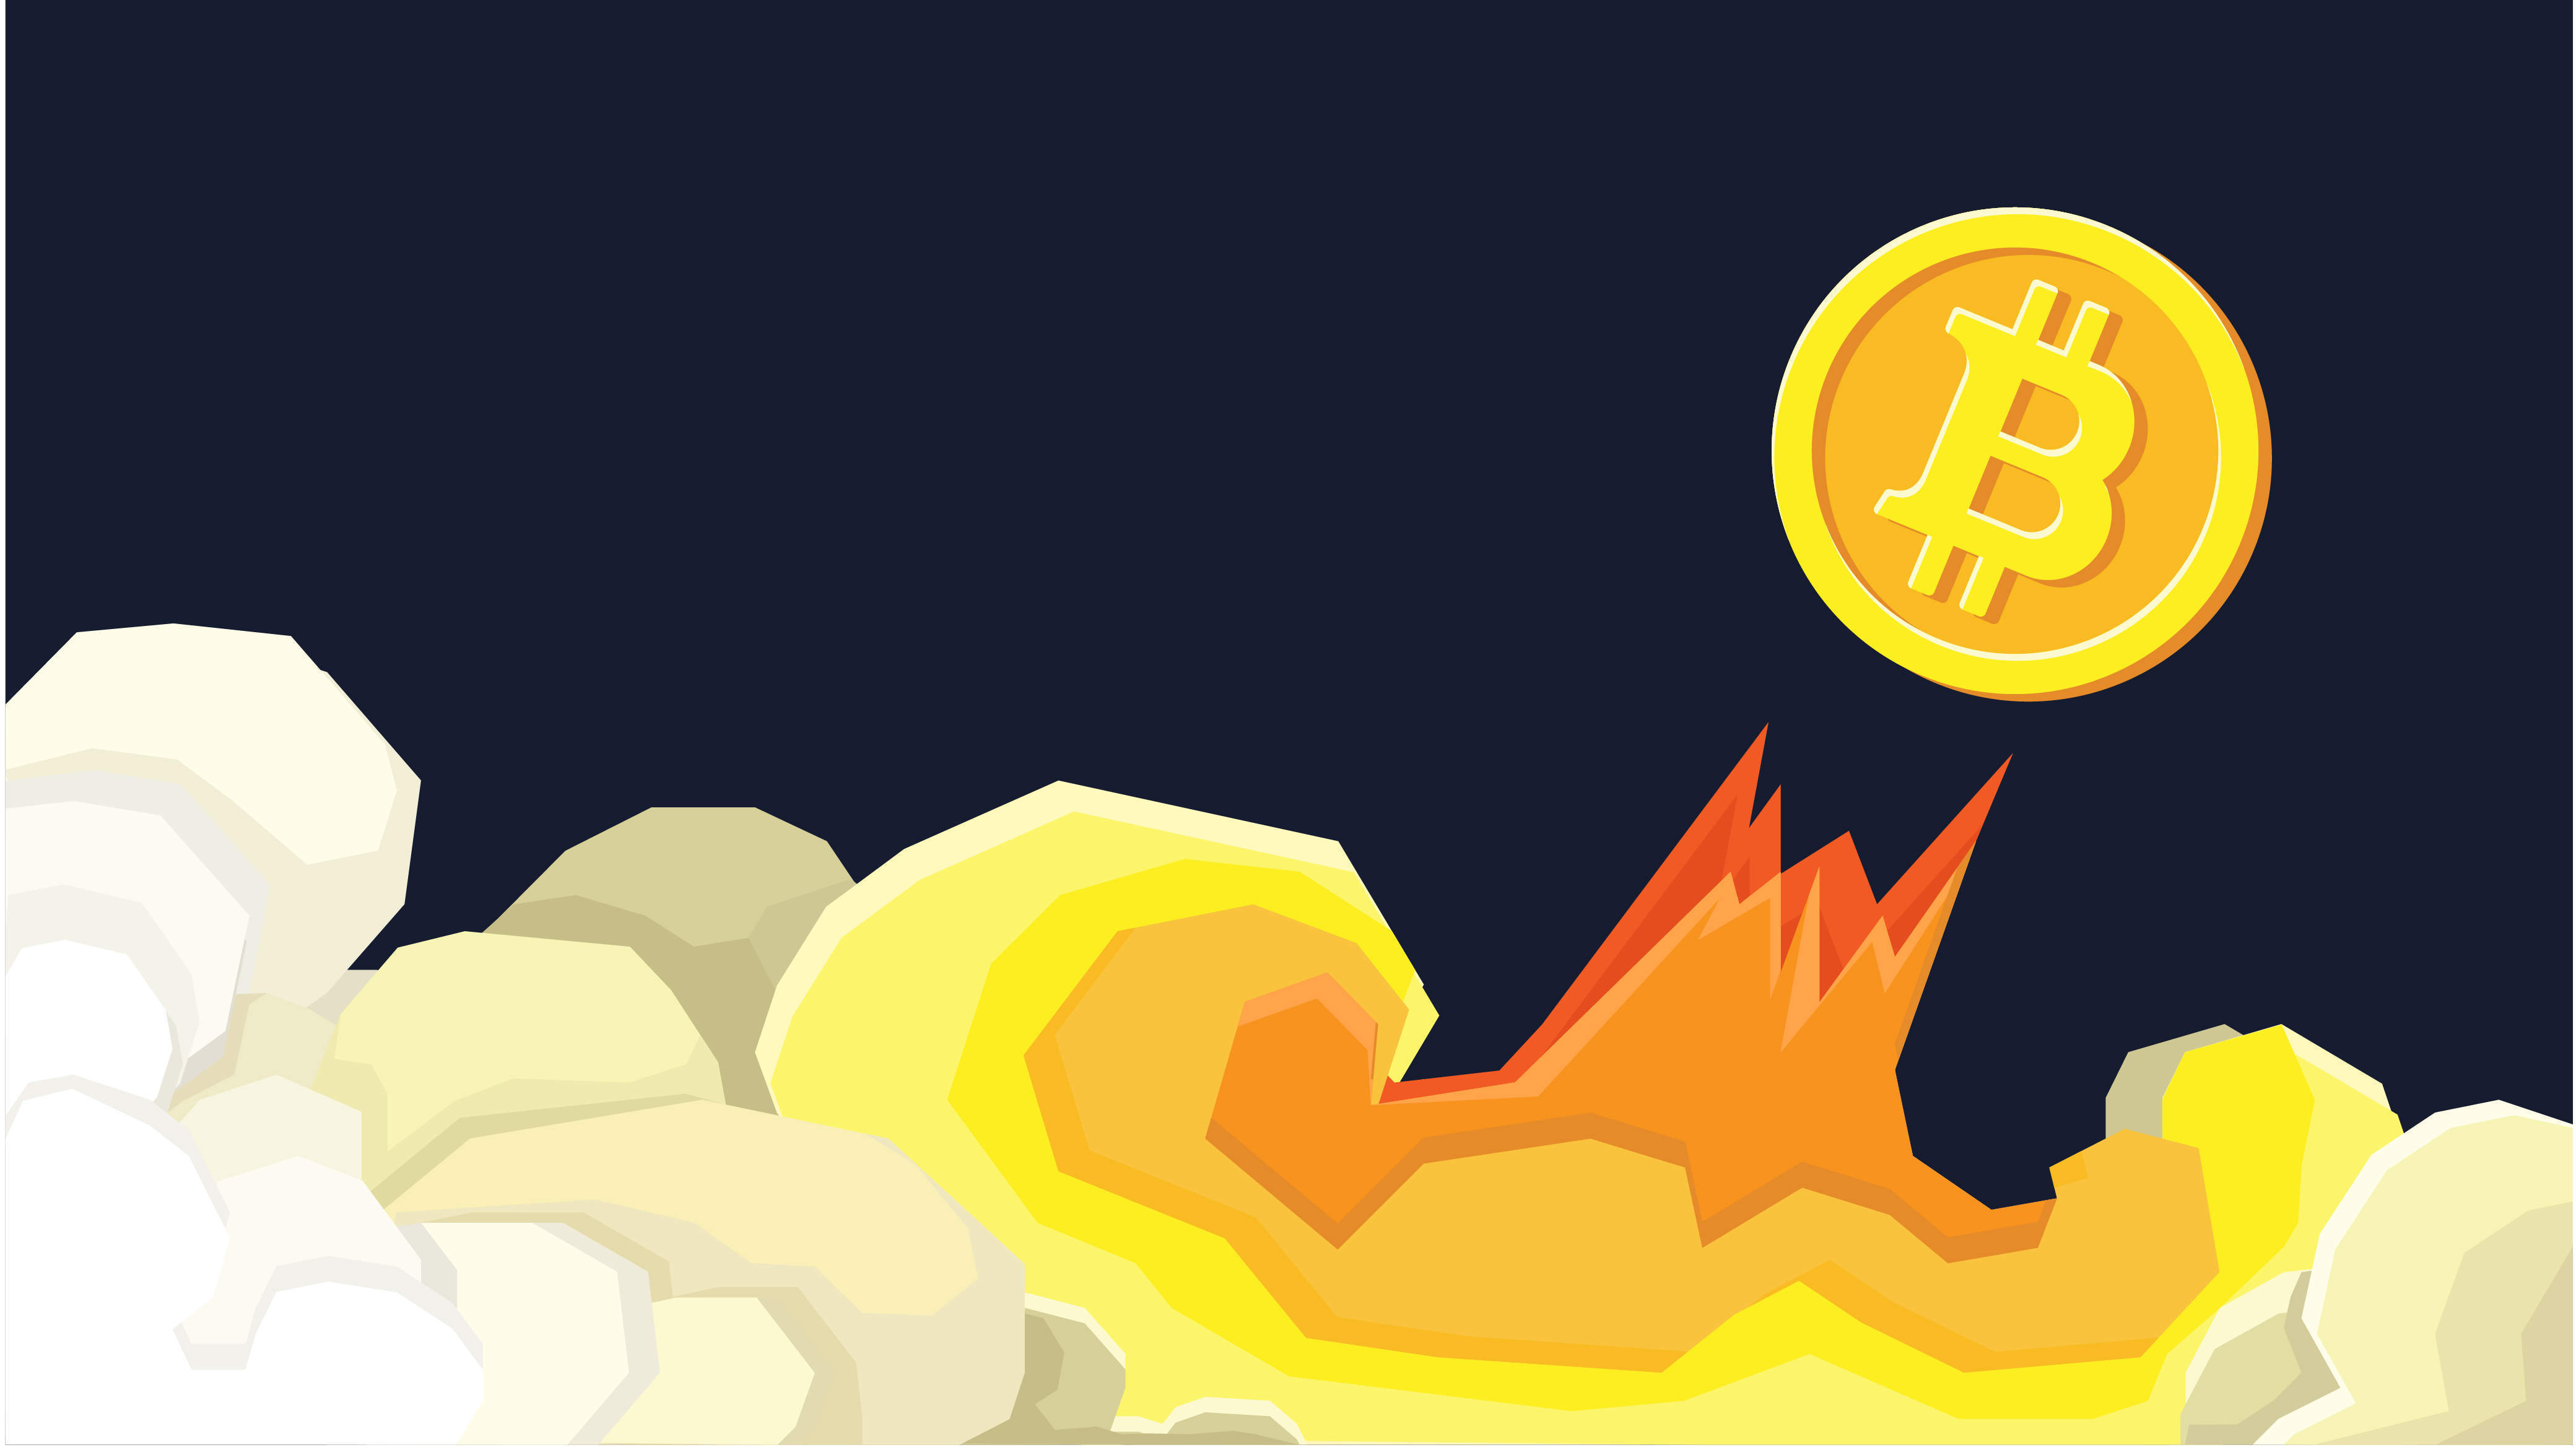 Bitcoin just hit $6,000. What's pushing it up?